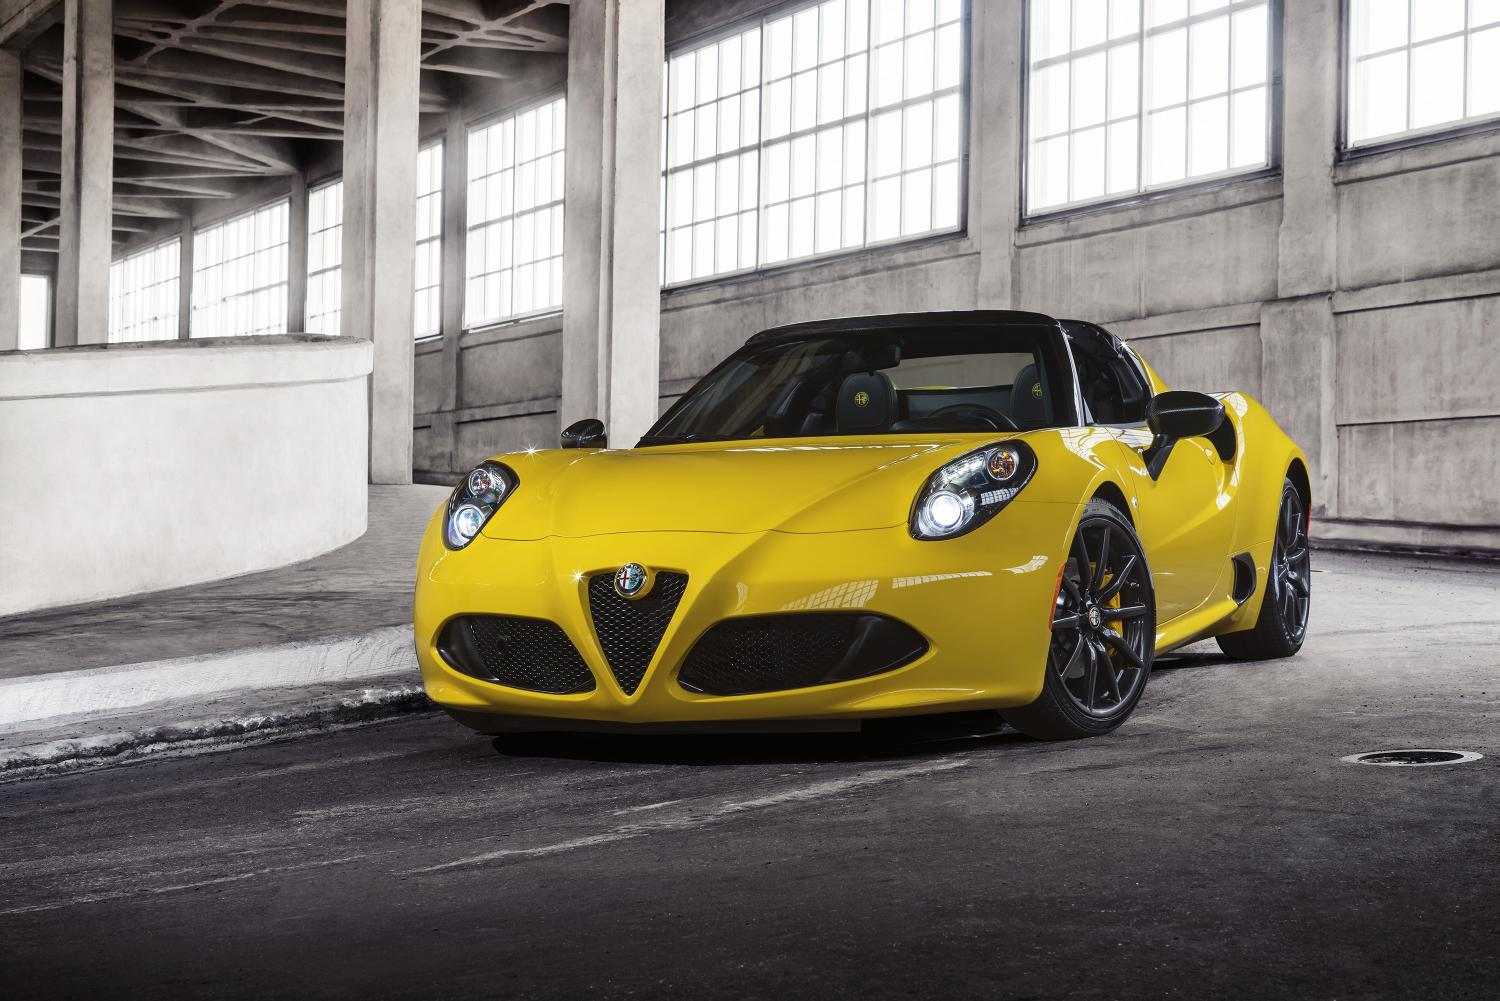 alfa romeo 4c spider official image 1. Black Bedroom Furniture Sets. Home Design Ideas